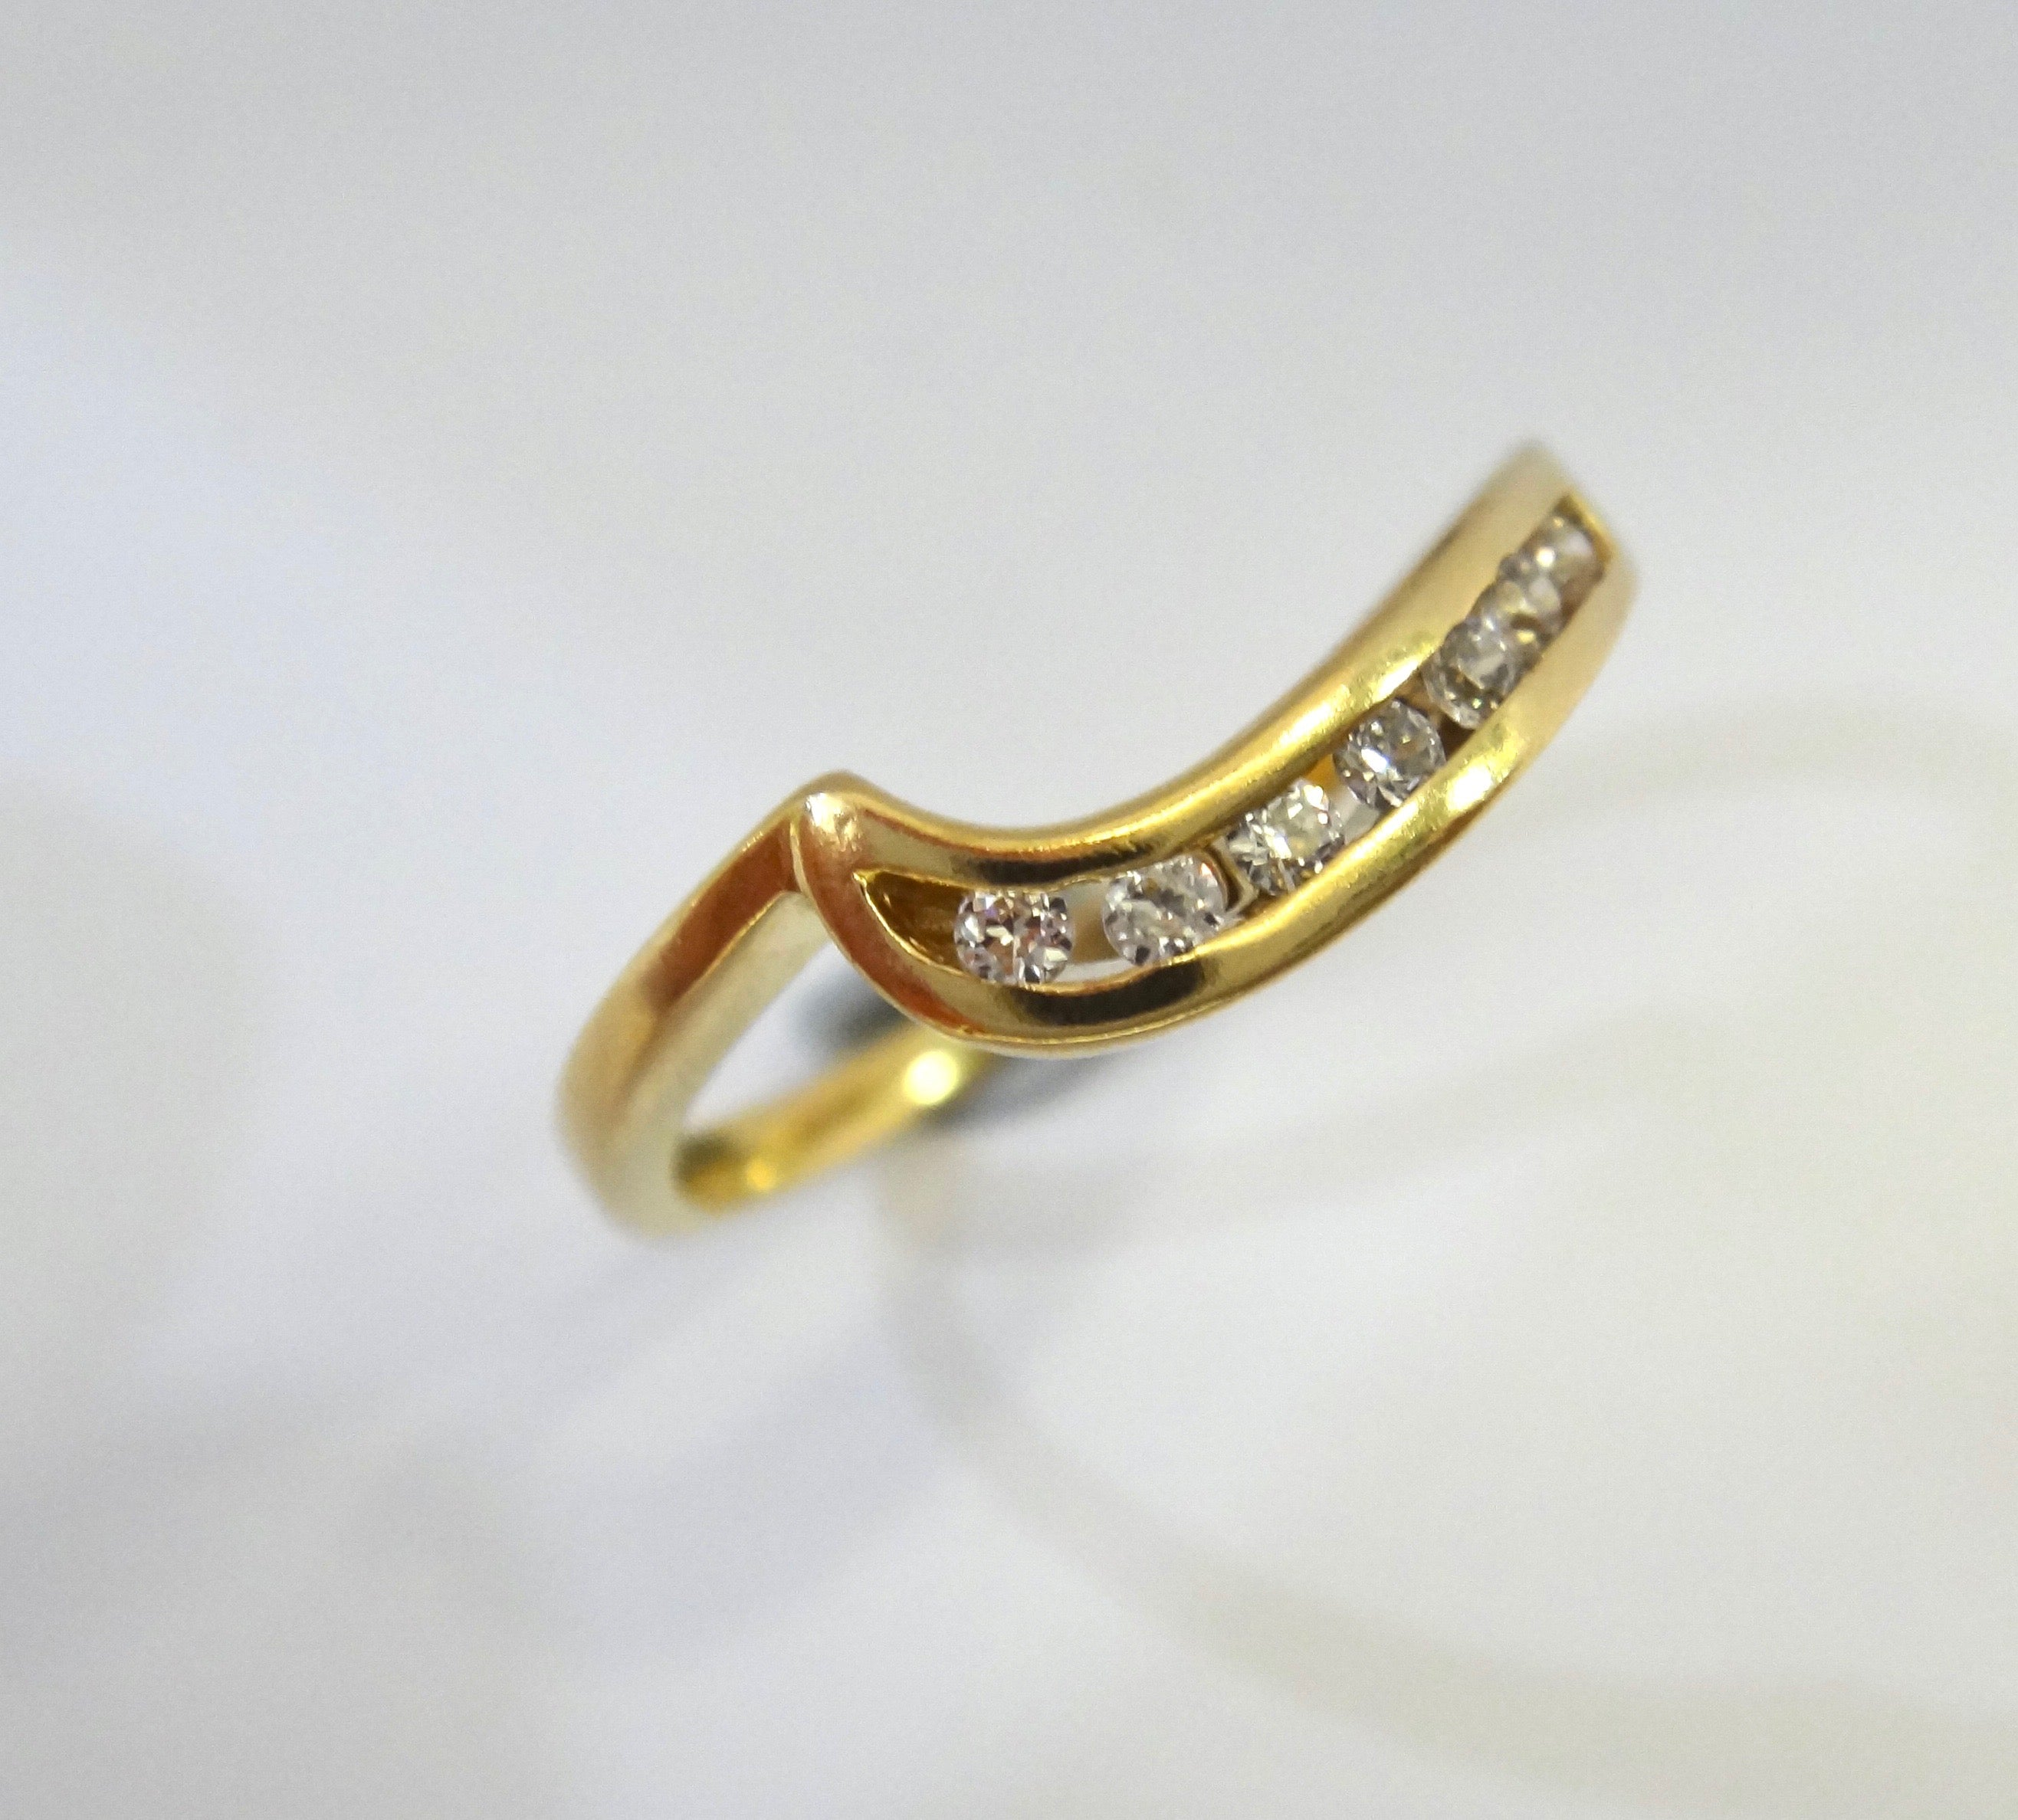 18CT Yellow GOLD & Diamond Channel Set Ring